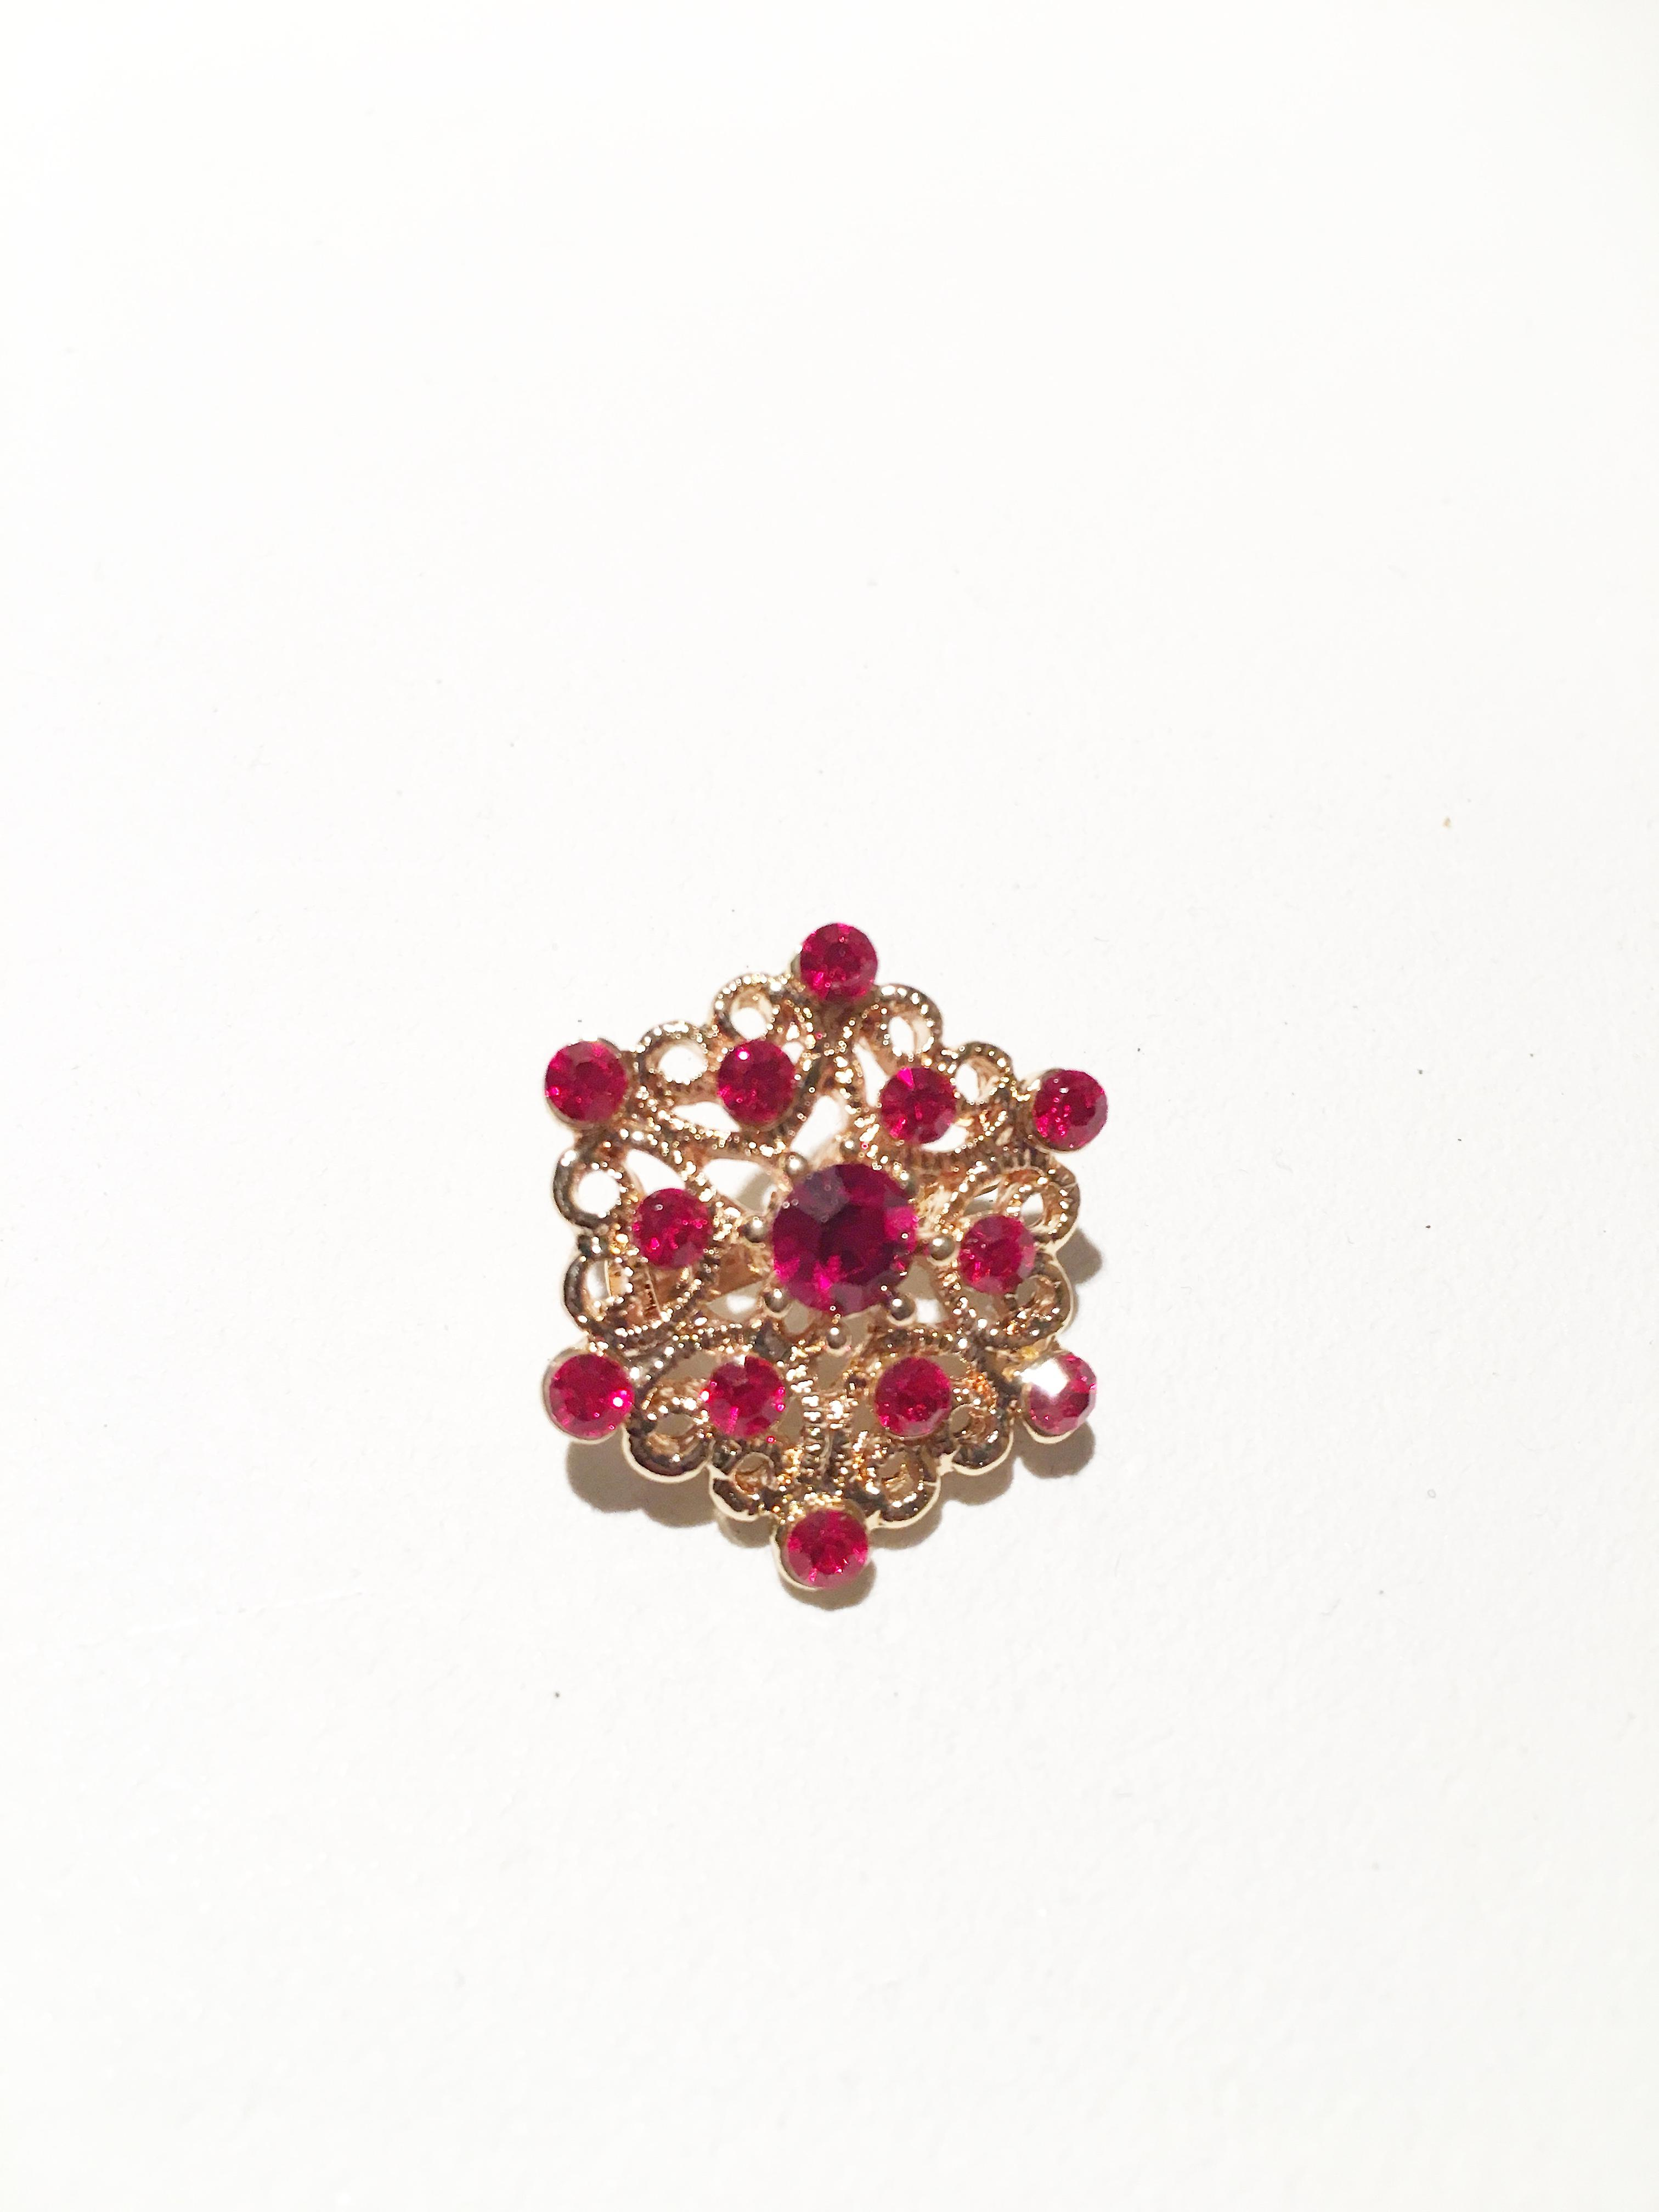 Antique Gold and Red Brooch